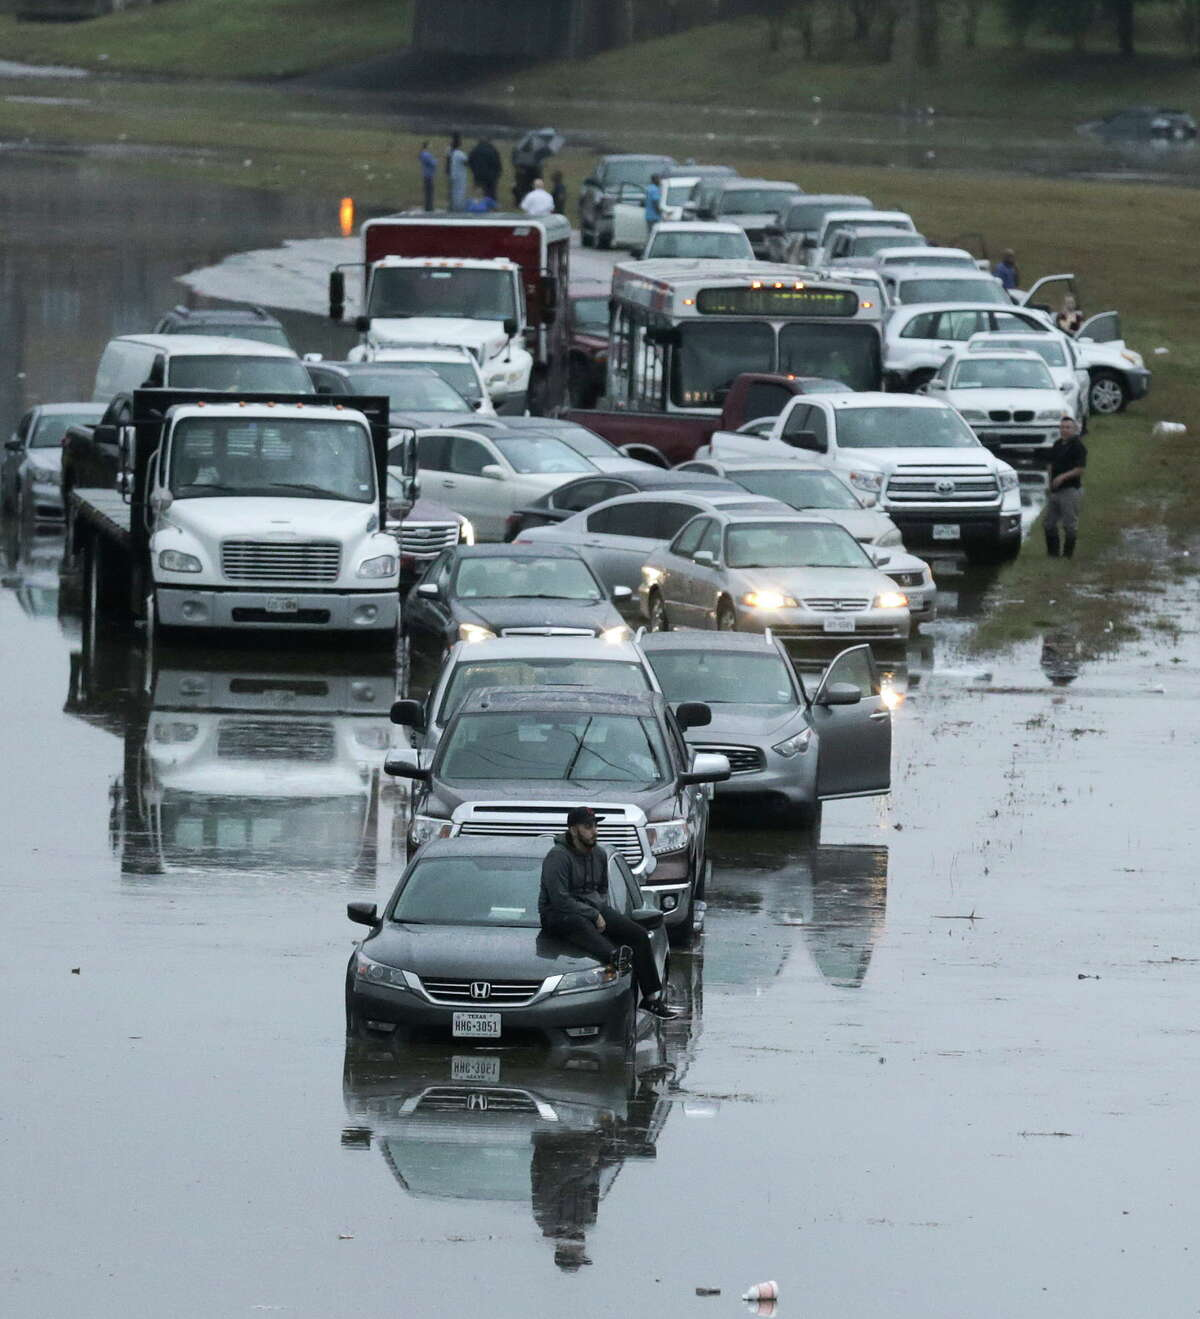 People wait for the water to recede on northbound 288 near Calumet after getting stuck flooding from the bayou after heavy nightfall rain on Wednesday, Jan. 18, 2017, in Houston.